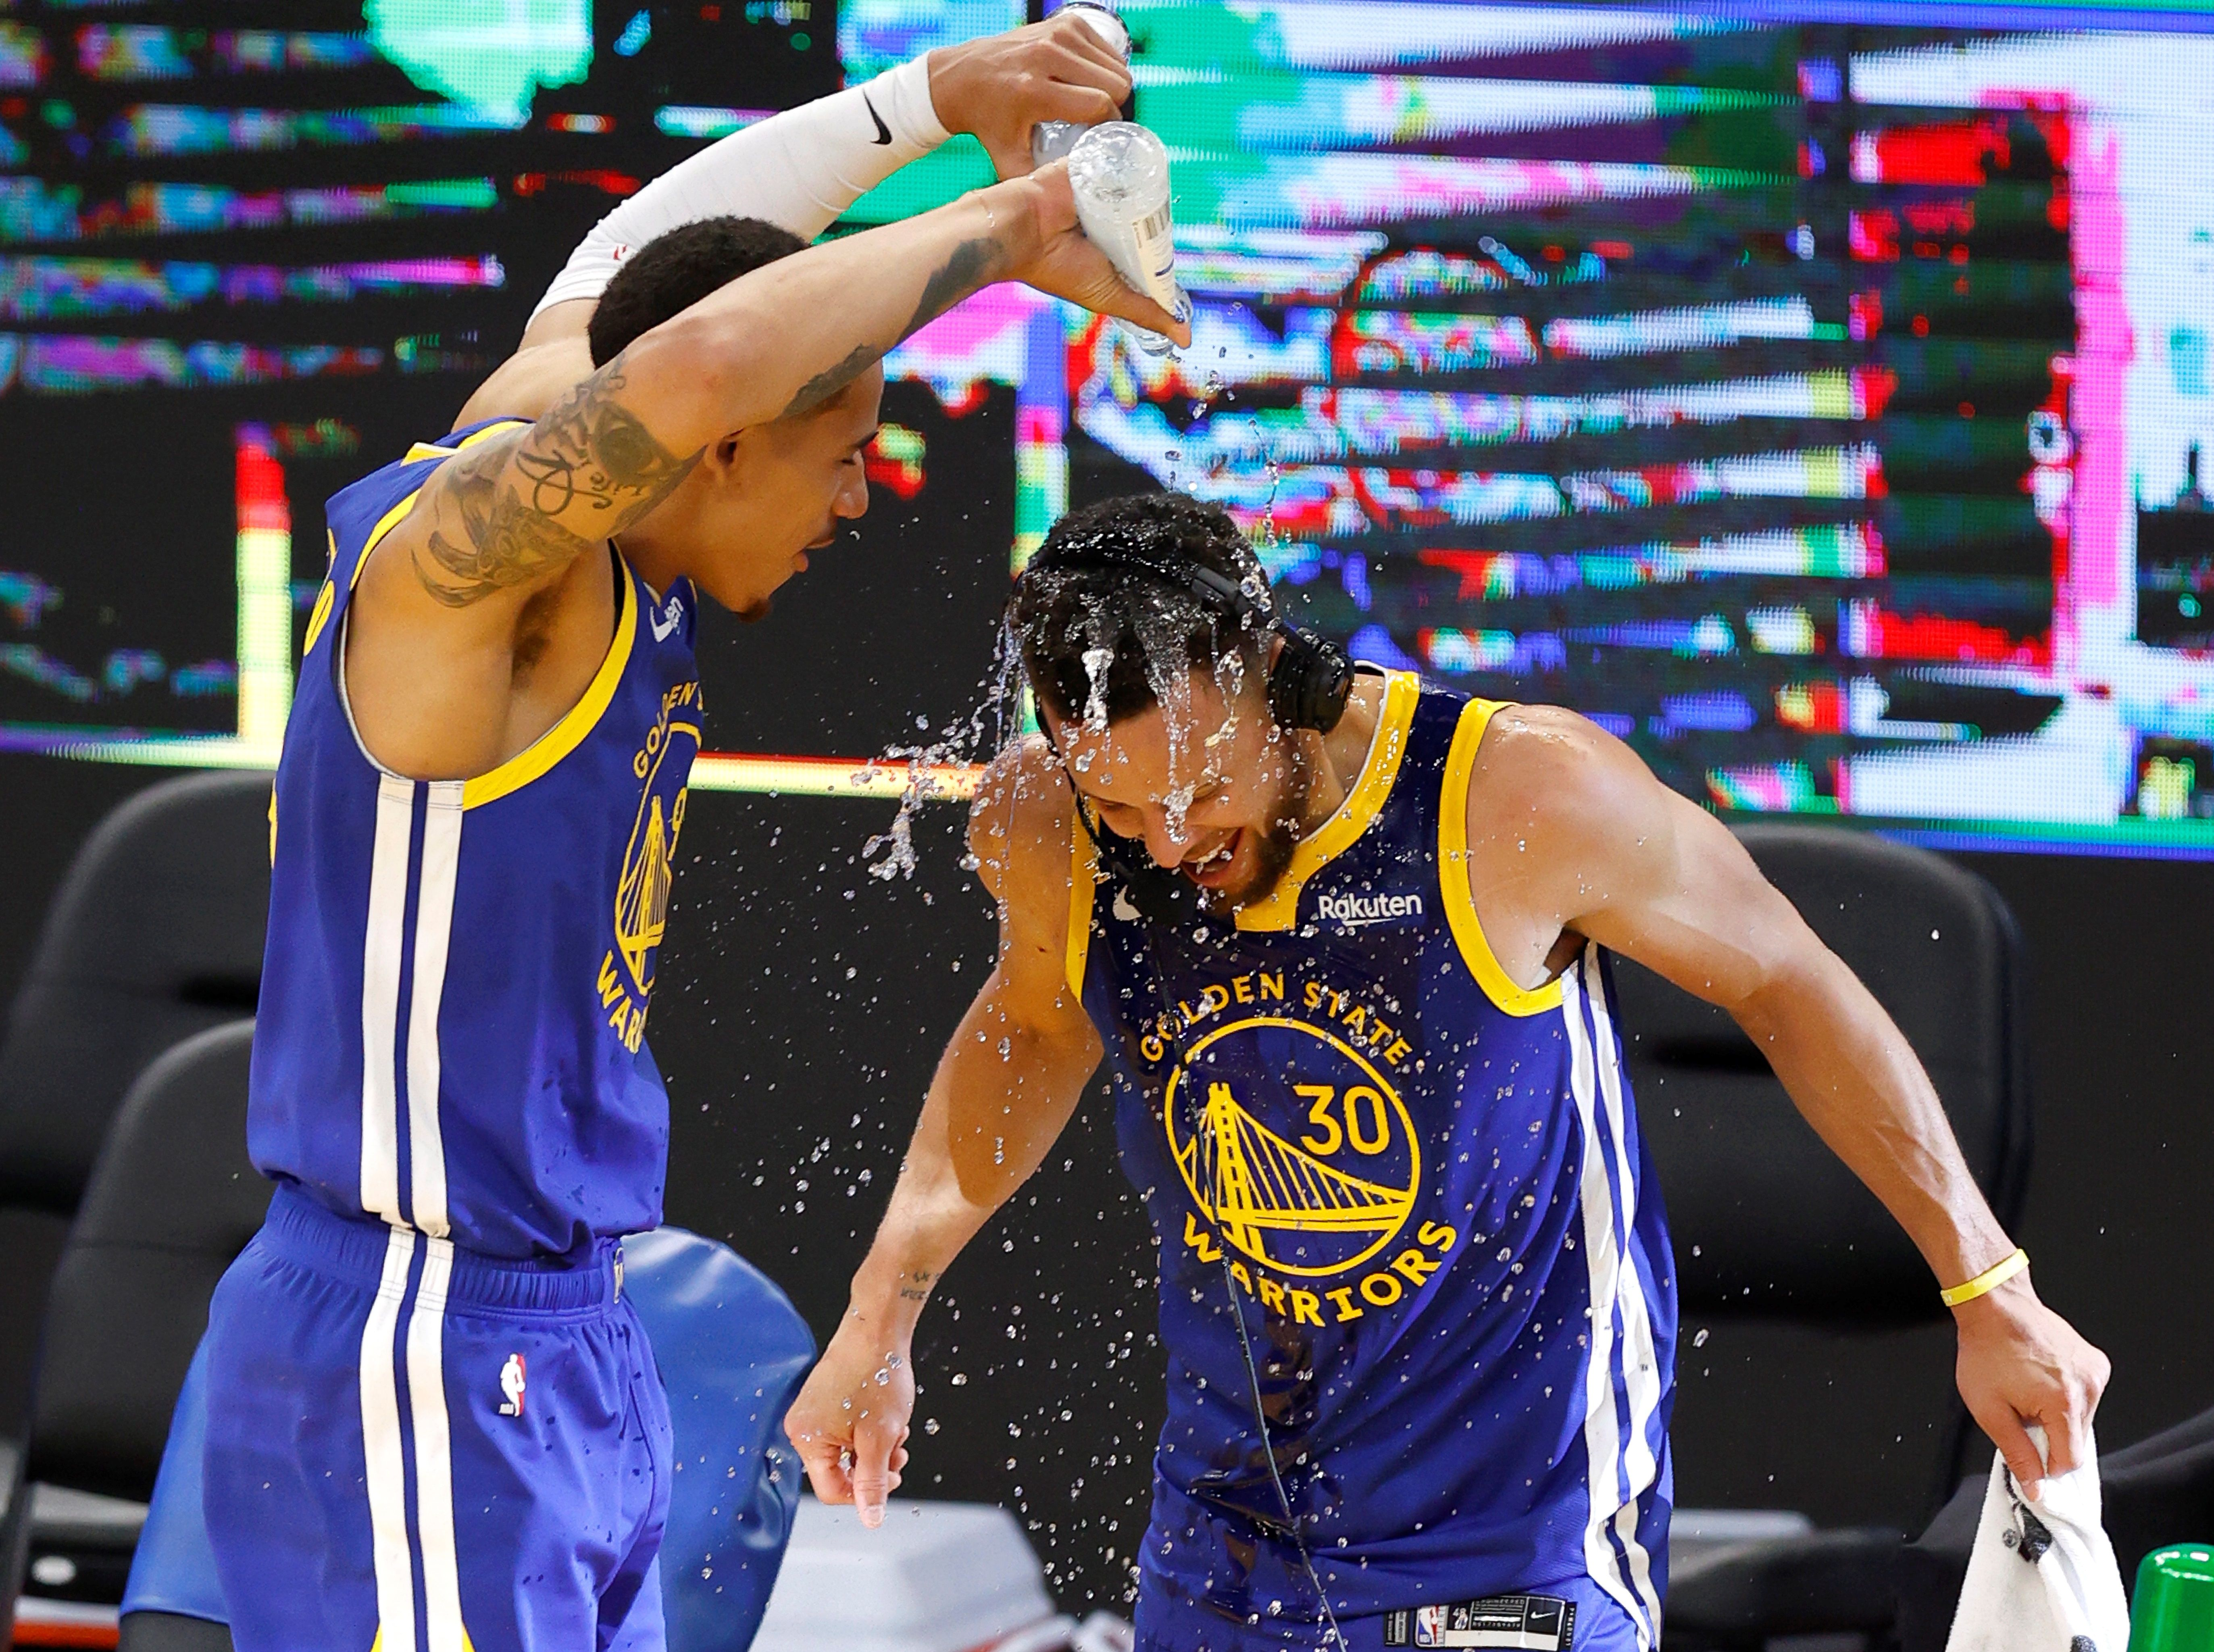 San Francisco (United States), 13/04/2021.- Golden State Warriors guard Stephen Curry (R) gets doused with water by Golden State Warriors forward Juan Toscano-Anderson (L) as Curry gives an interview after surpassing Golden State Warriors legend Wilt Chamberlain for a franchise all-time leading scorer, at the conclusion of the NBA basketball game between the Denver Nuggets and Golden State Warriors at Chase Center in San Francisco, EFE/EPA/JOHN G. MABANGLO